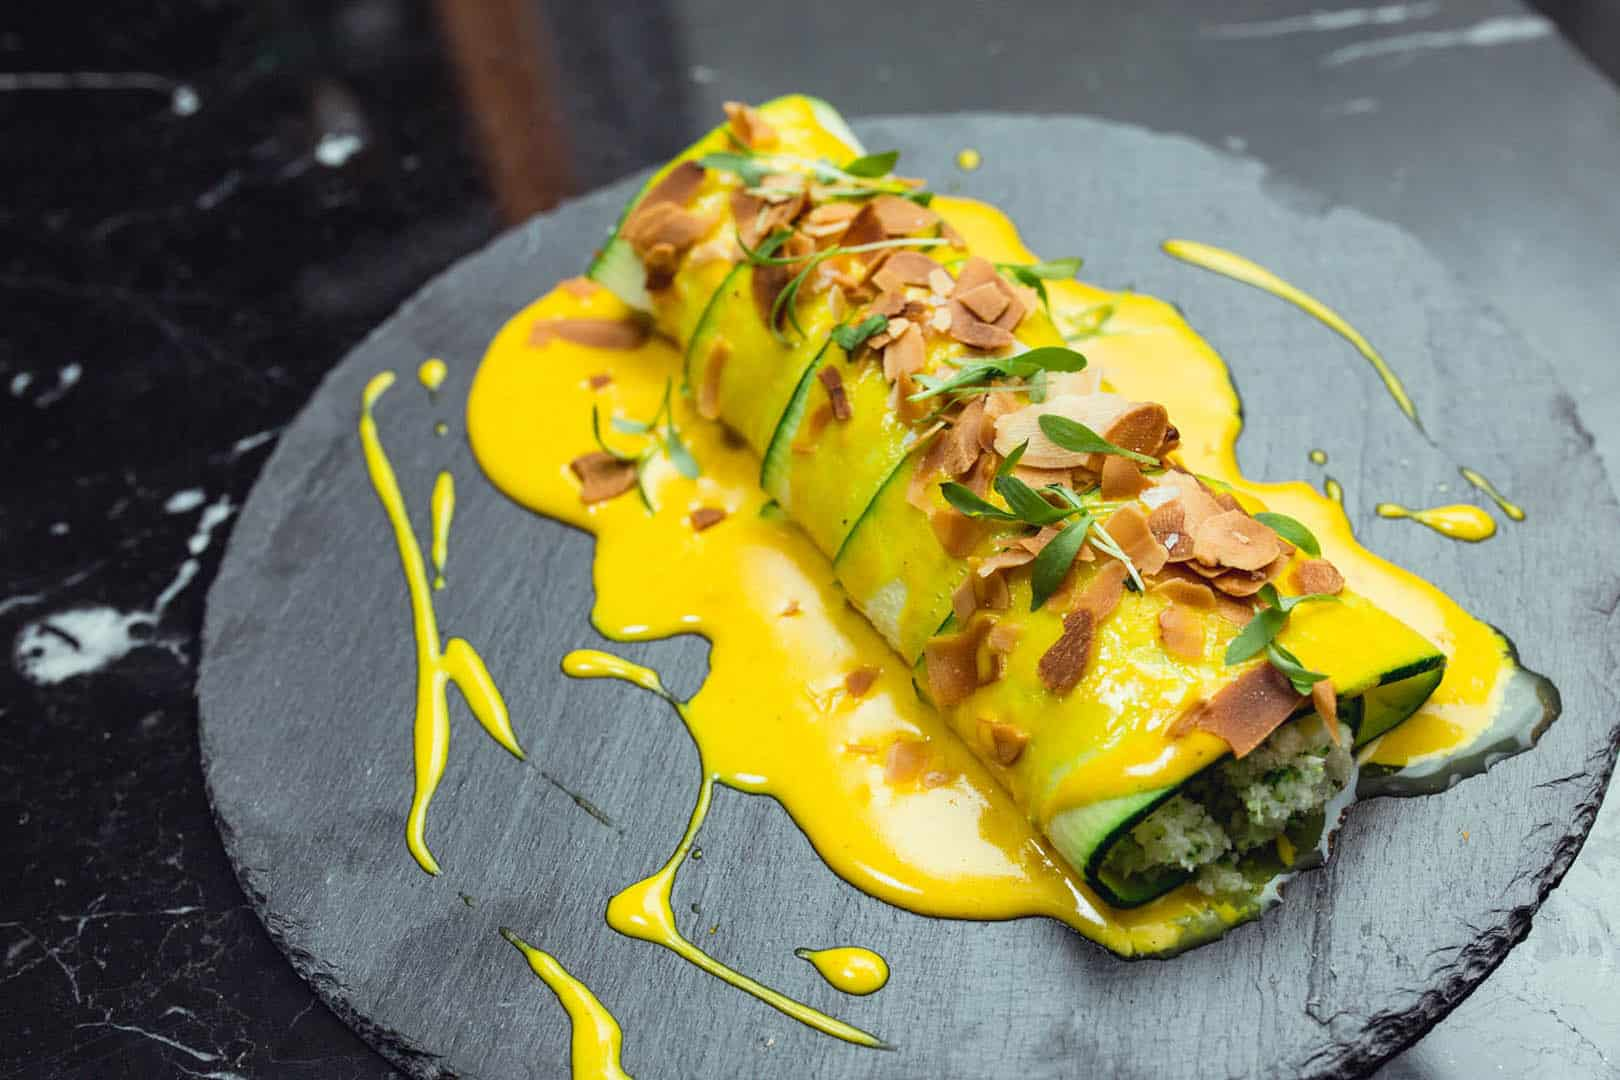 Zucchini cannelloni with cauliflower couscous, goat cheese & turmeric sauce